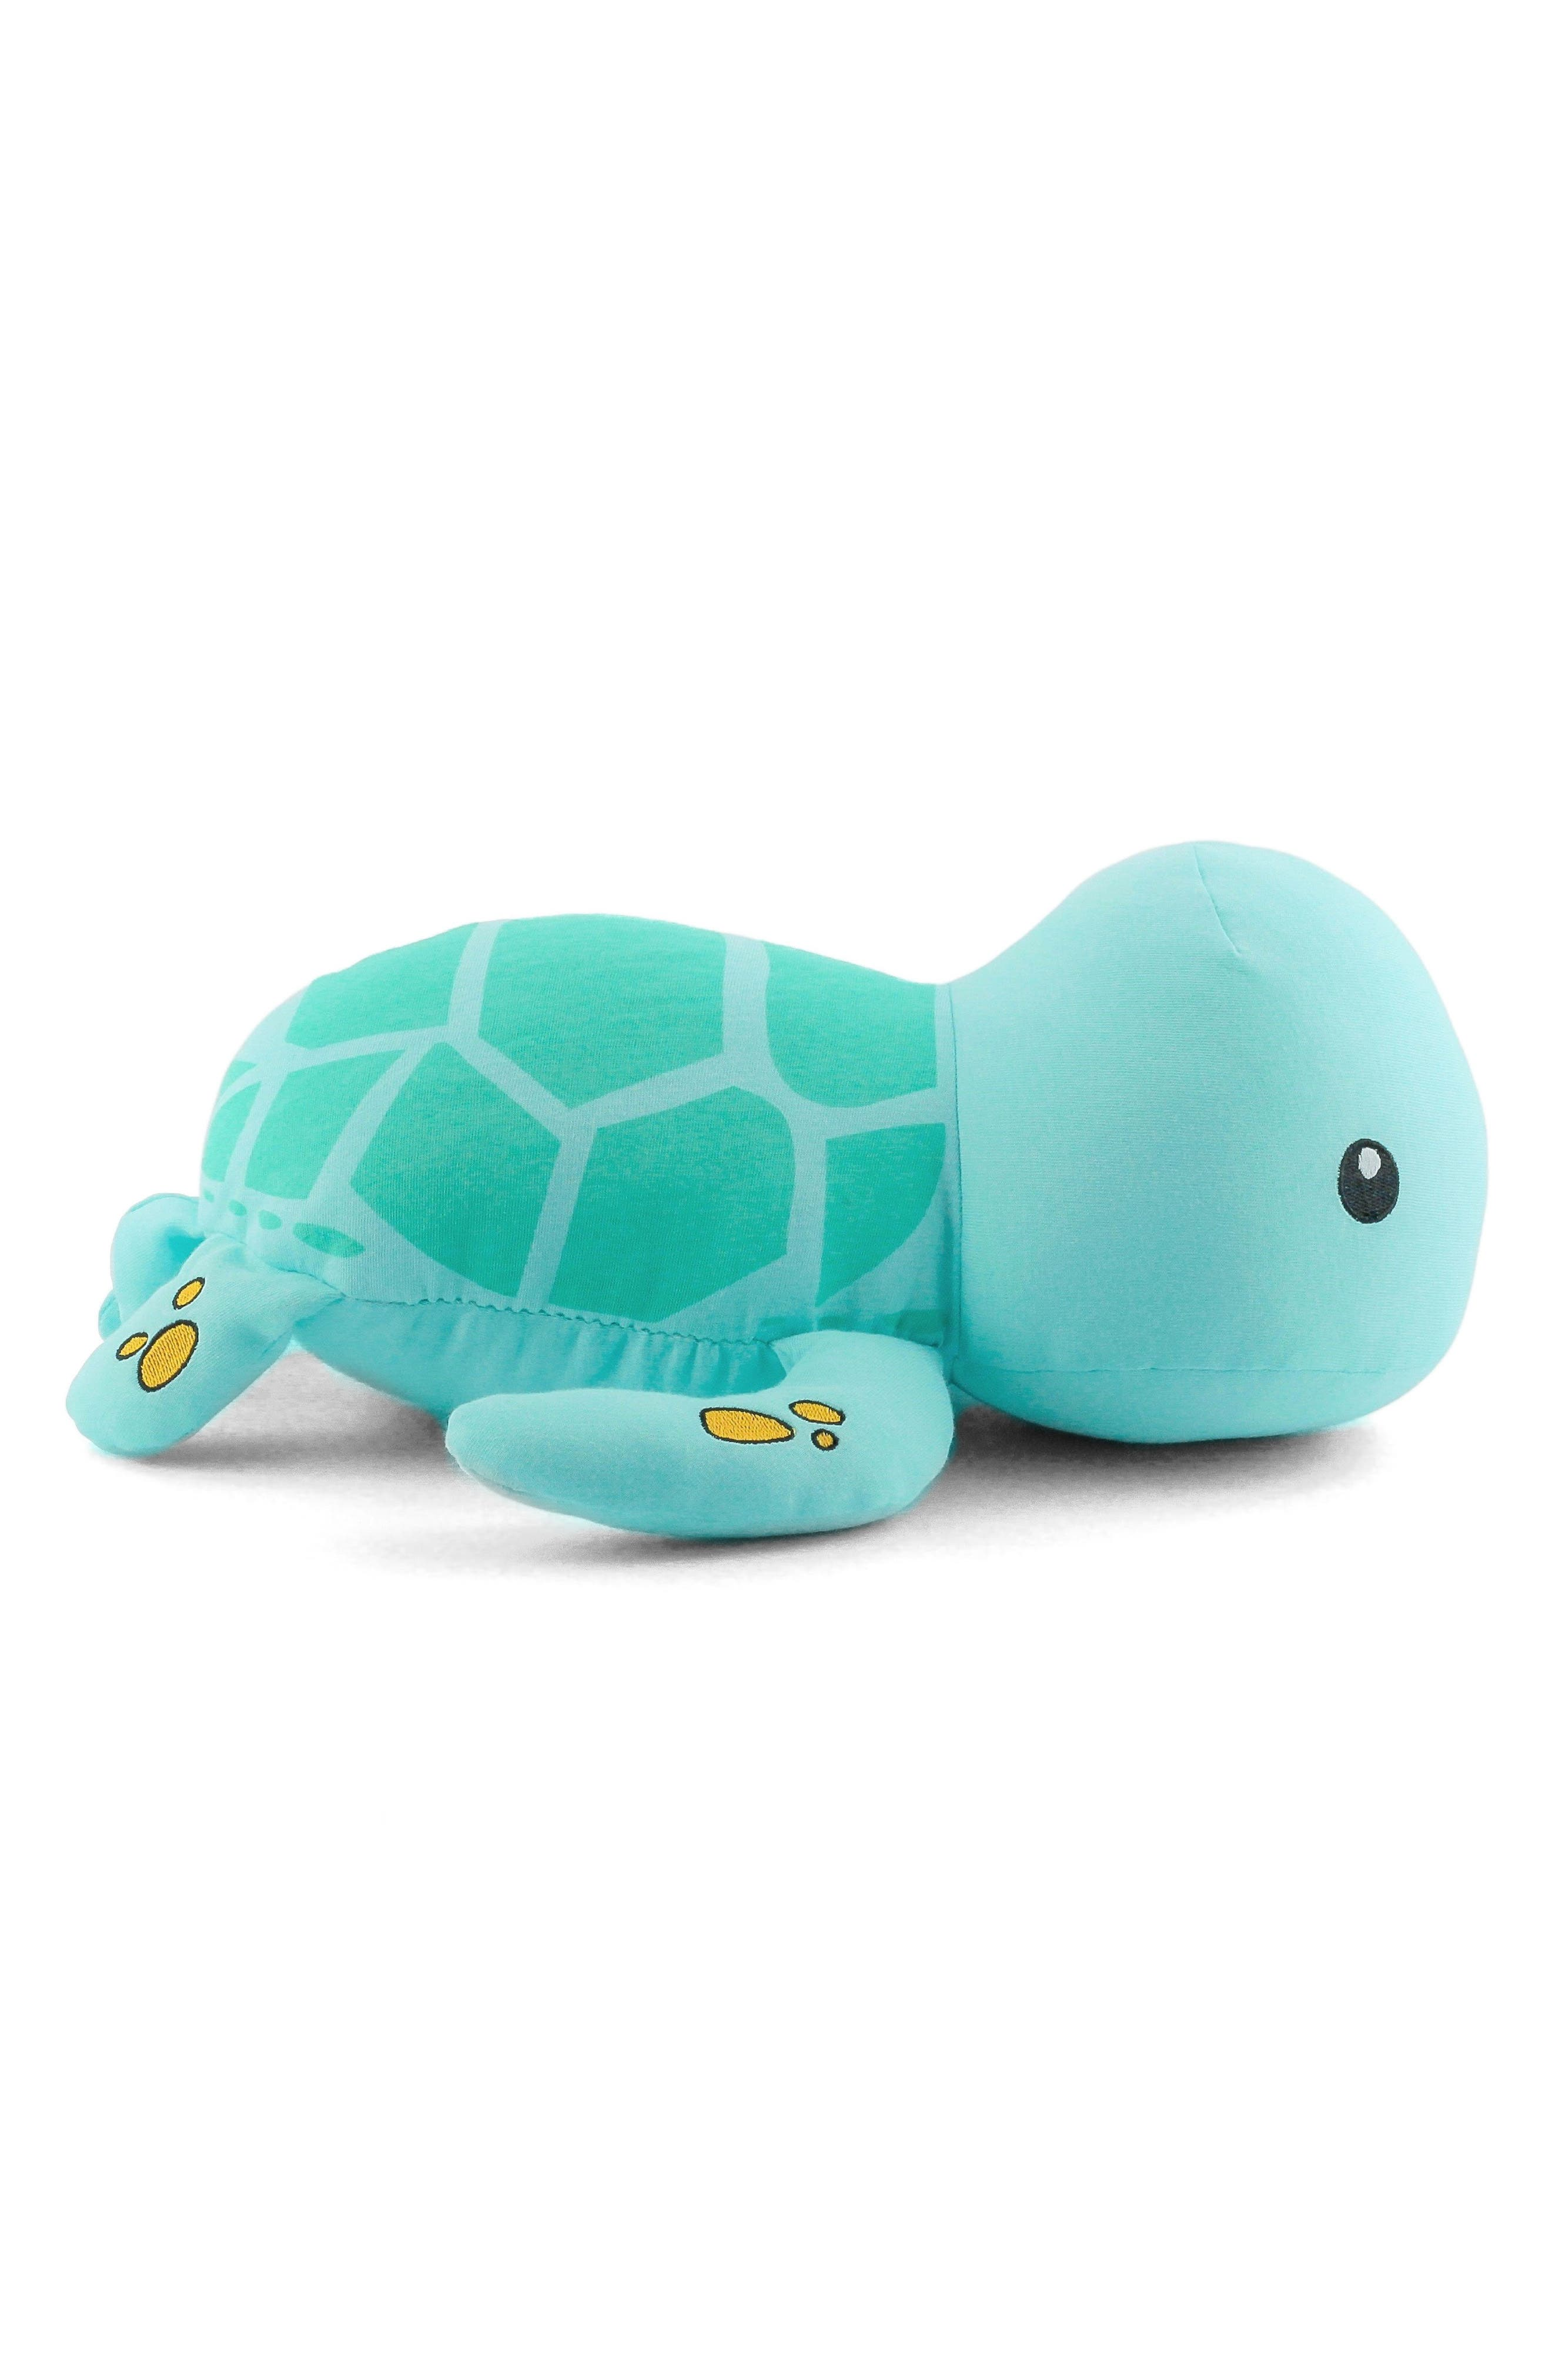 Small Tucker Turtle Stuffed Animal,                             Main thumbnail 1, color,                             440